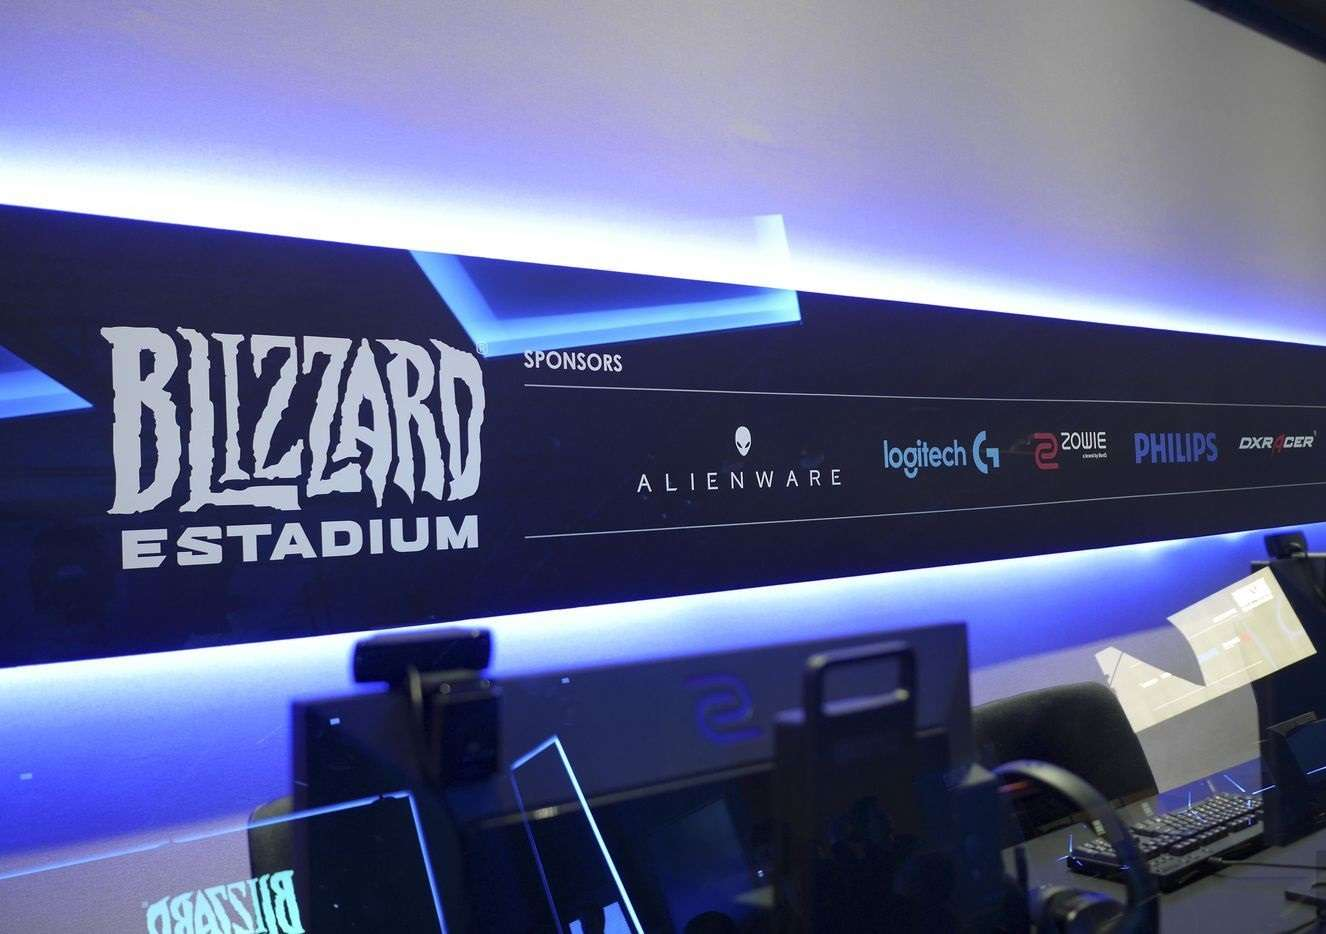 Blizzard eStadium Salonu